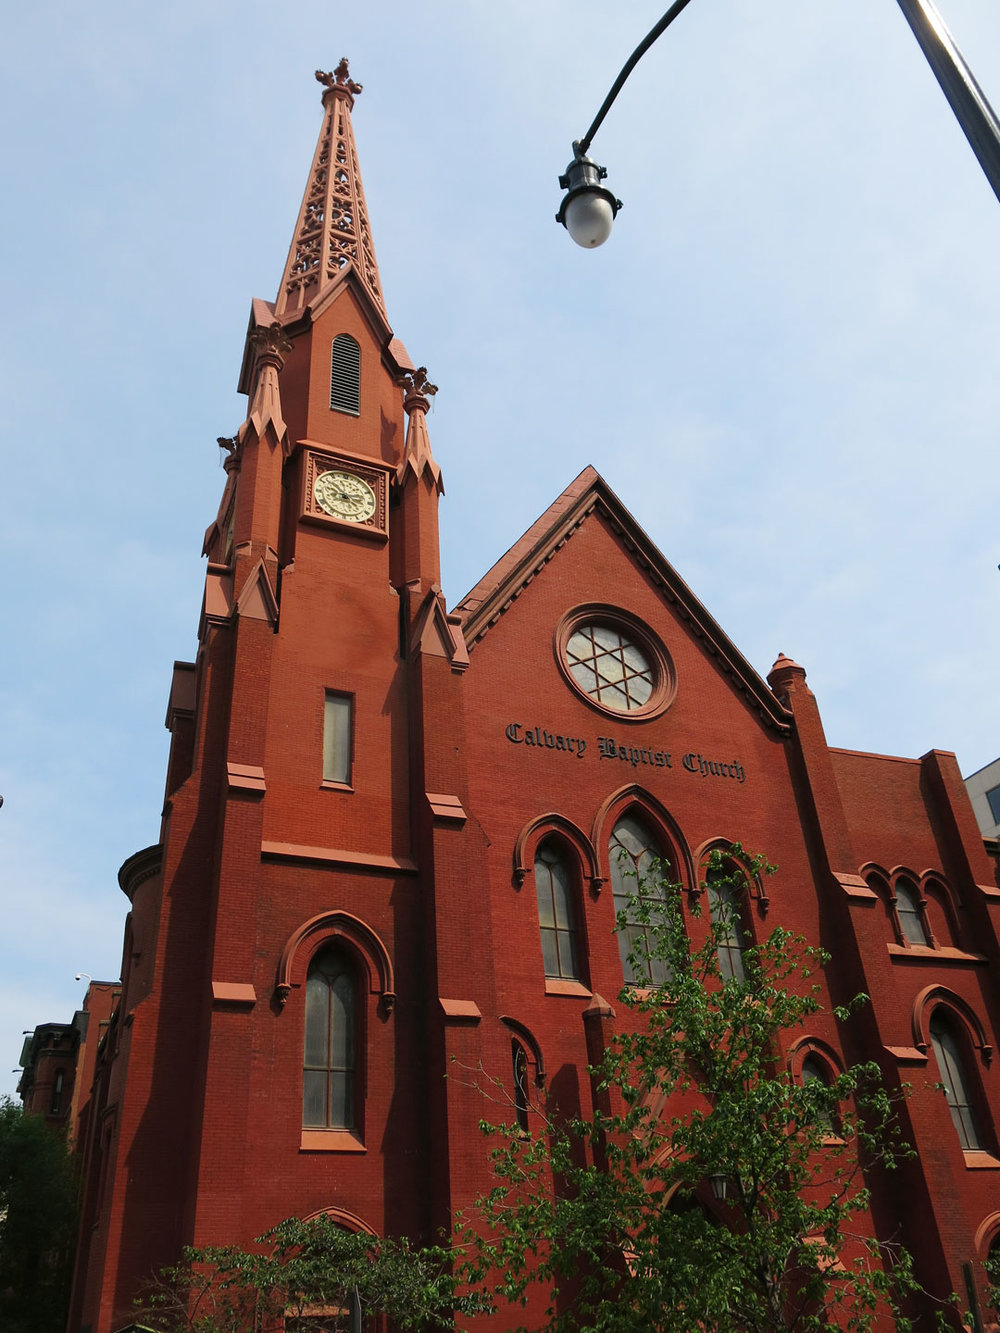 The very beautiful Calvary Baptist Church, in Chinatown, Washington D.C.